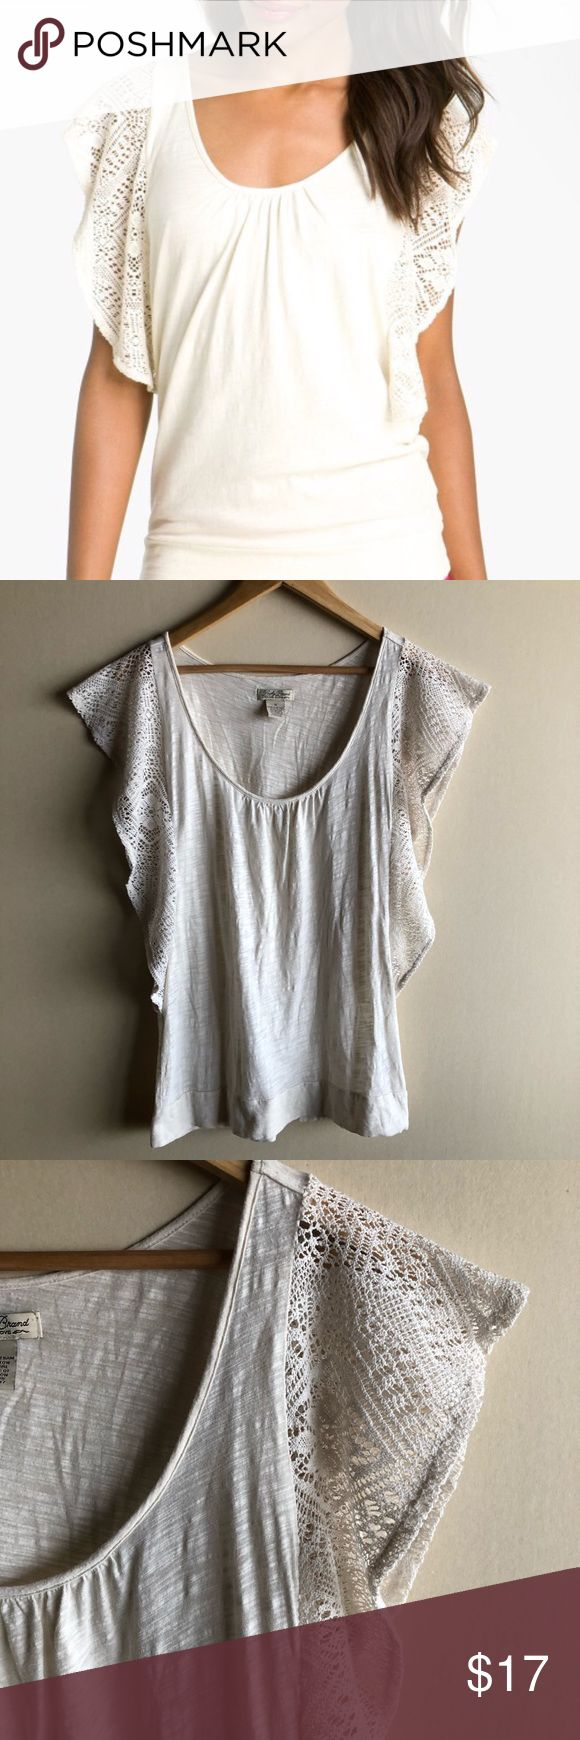 """Lucky Brand cream Sarafina flutter sleeve top Cream colored slub cotton top with crochet flutter sleeves. Gently worn in great condition! Measures 18"""" from underarm to underarm and 27.5"""" long. Lucky Brand Tops"""